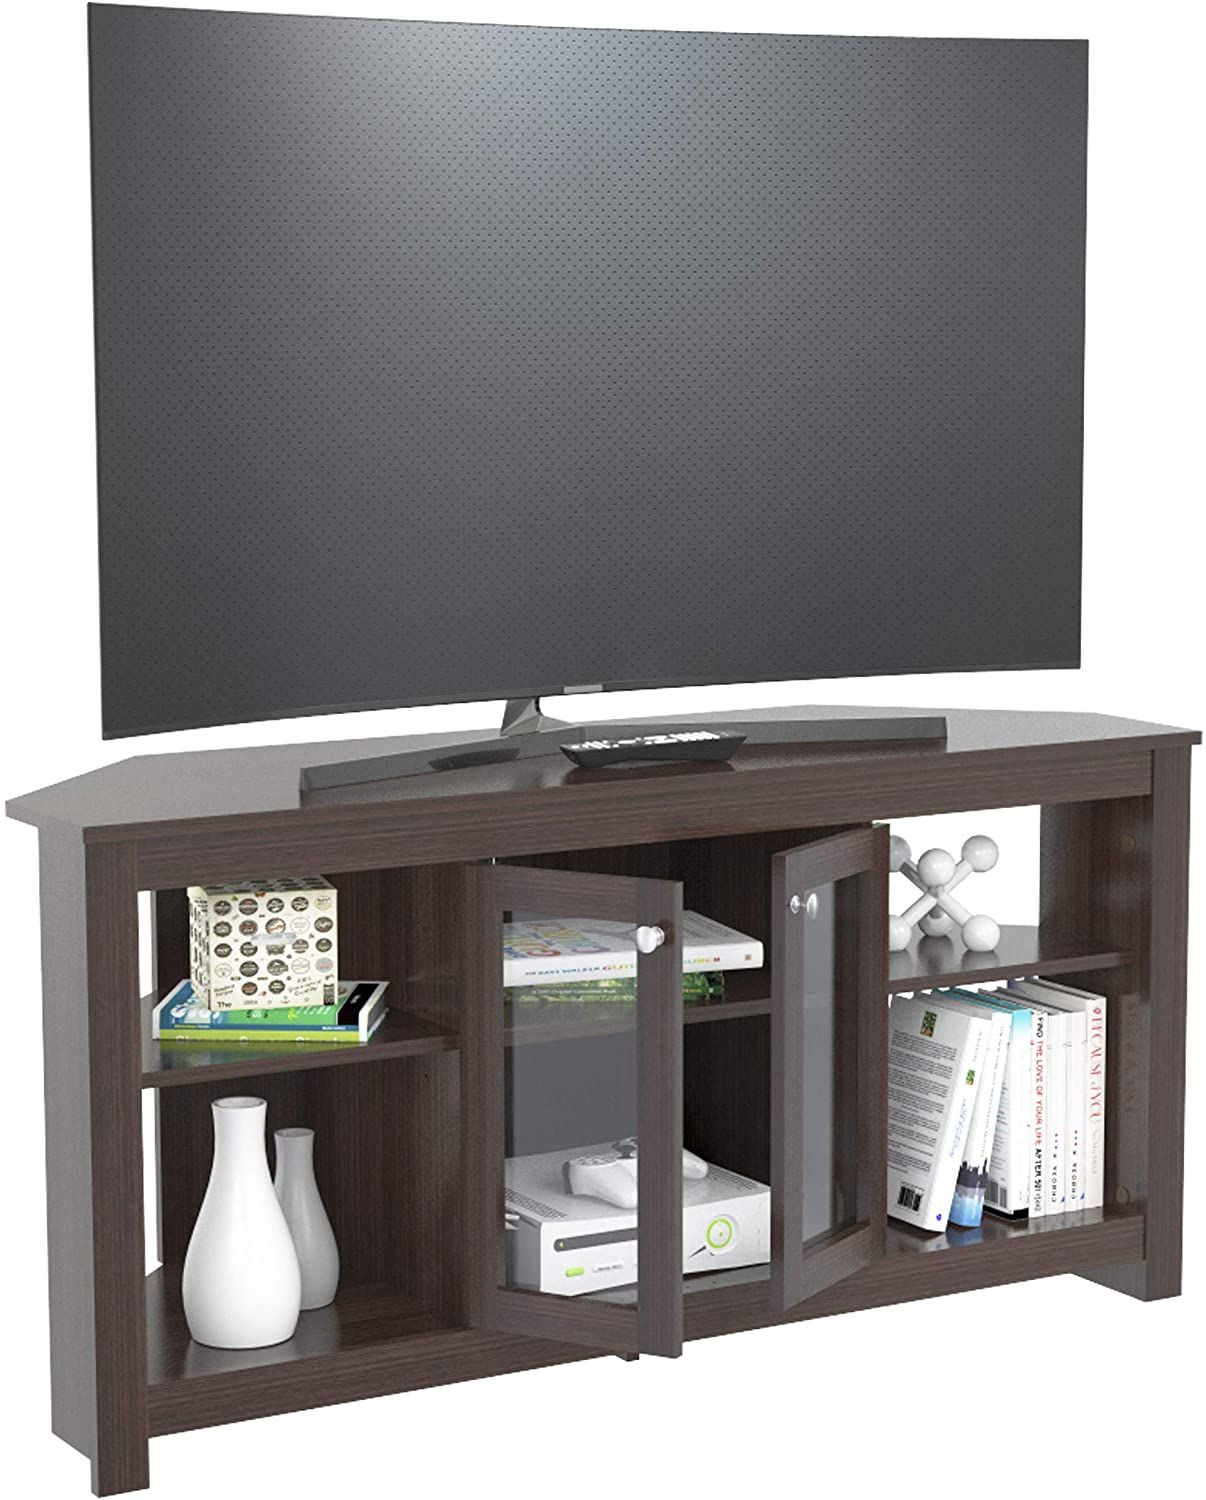 Inval Corner Tv Stand With Glass Doors Espresso Home Kitchen Furniture Liv In 2020 Tv Stand With Glass Doors Living Room Entertainment Center Corner Tv Stand